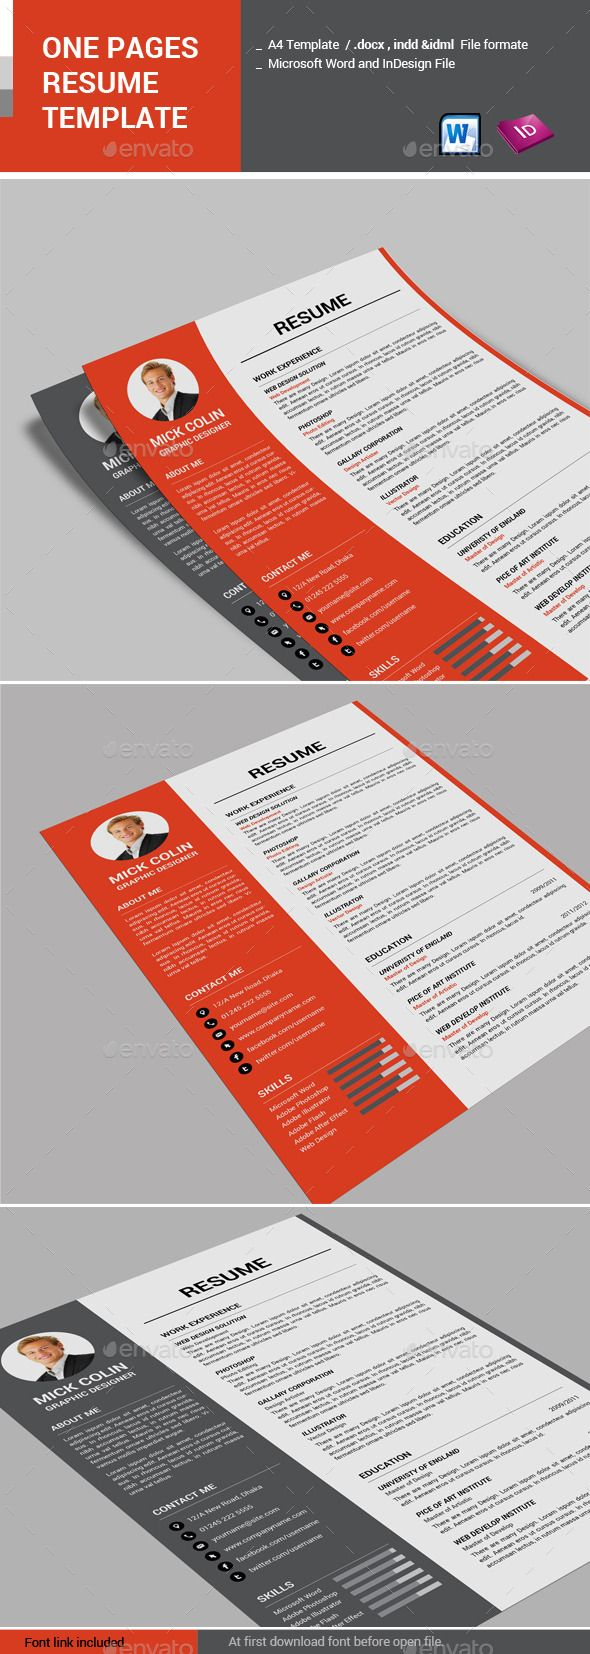 One Pages Resume Template by alimran24 Description Print ready CMYK color mode. Word .docx, and InDesign indd, idml file format. A4 page size fully layered. Two color a